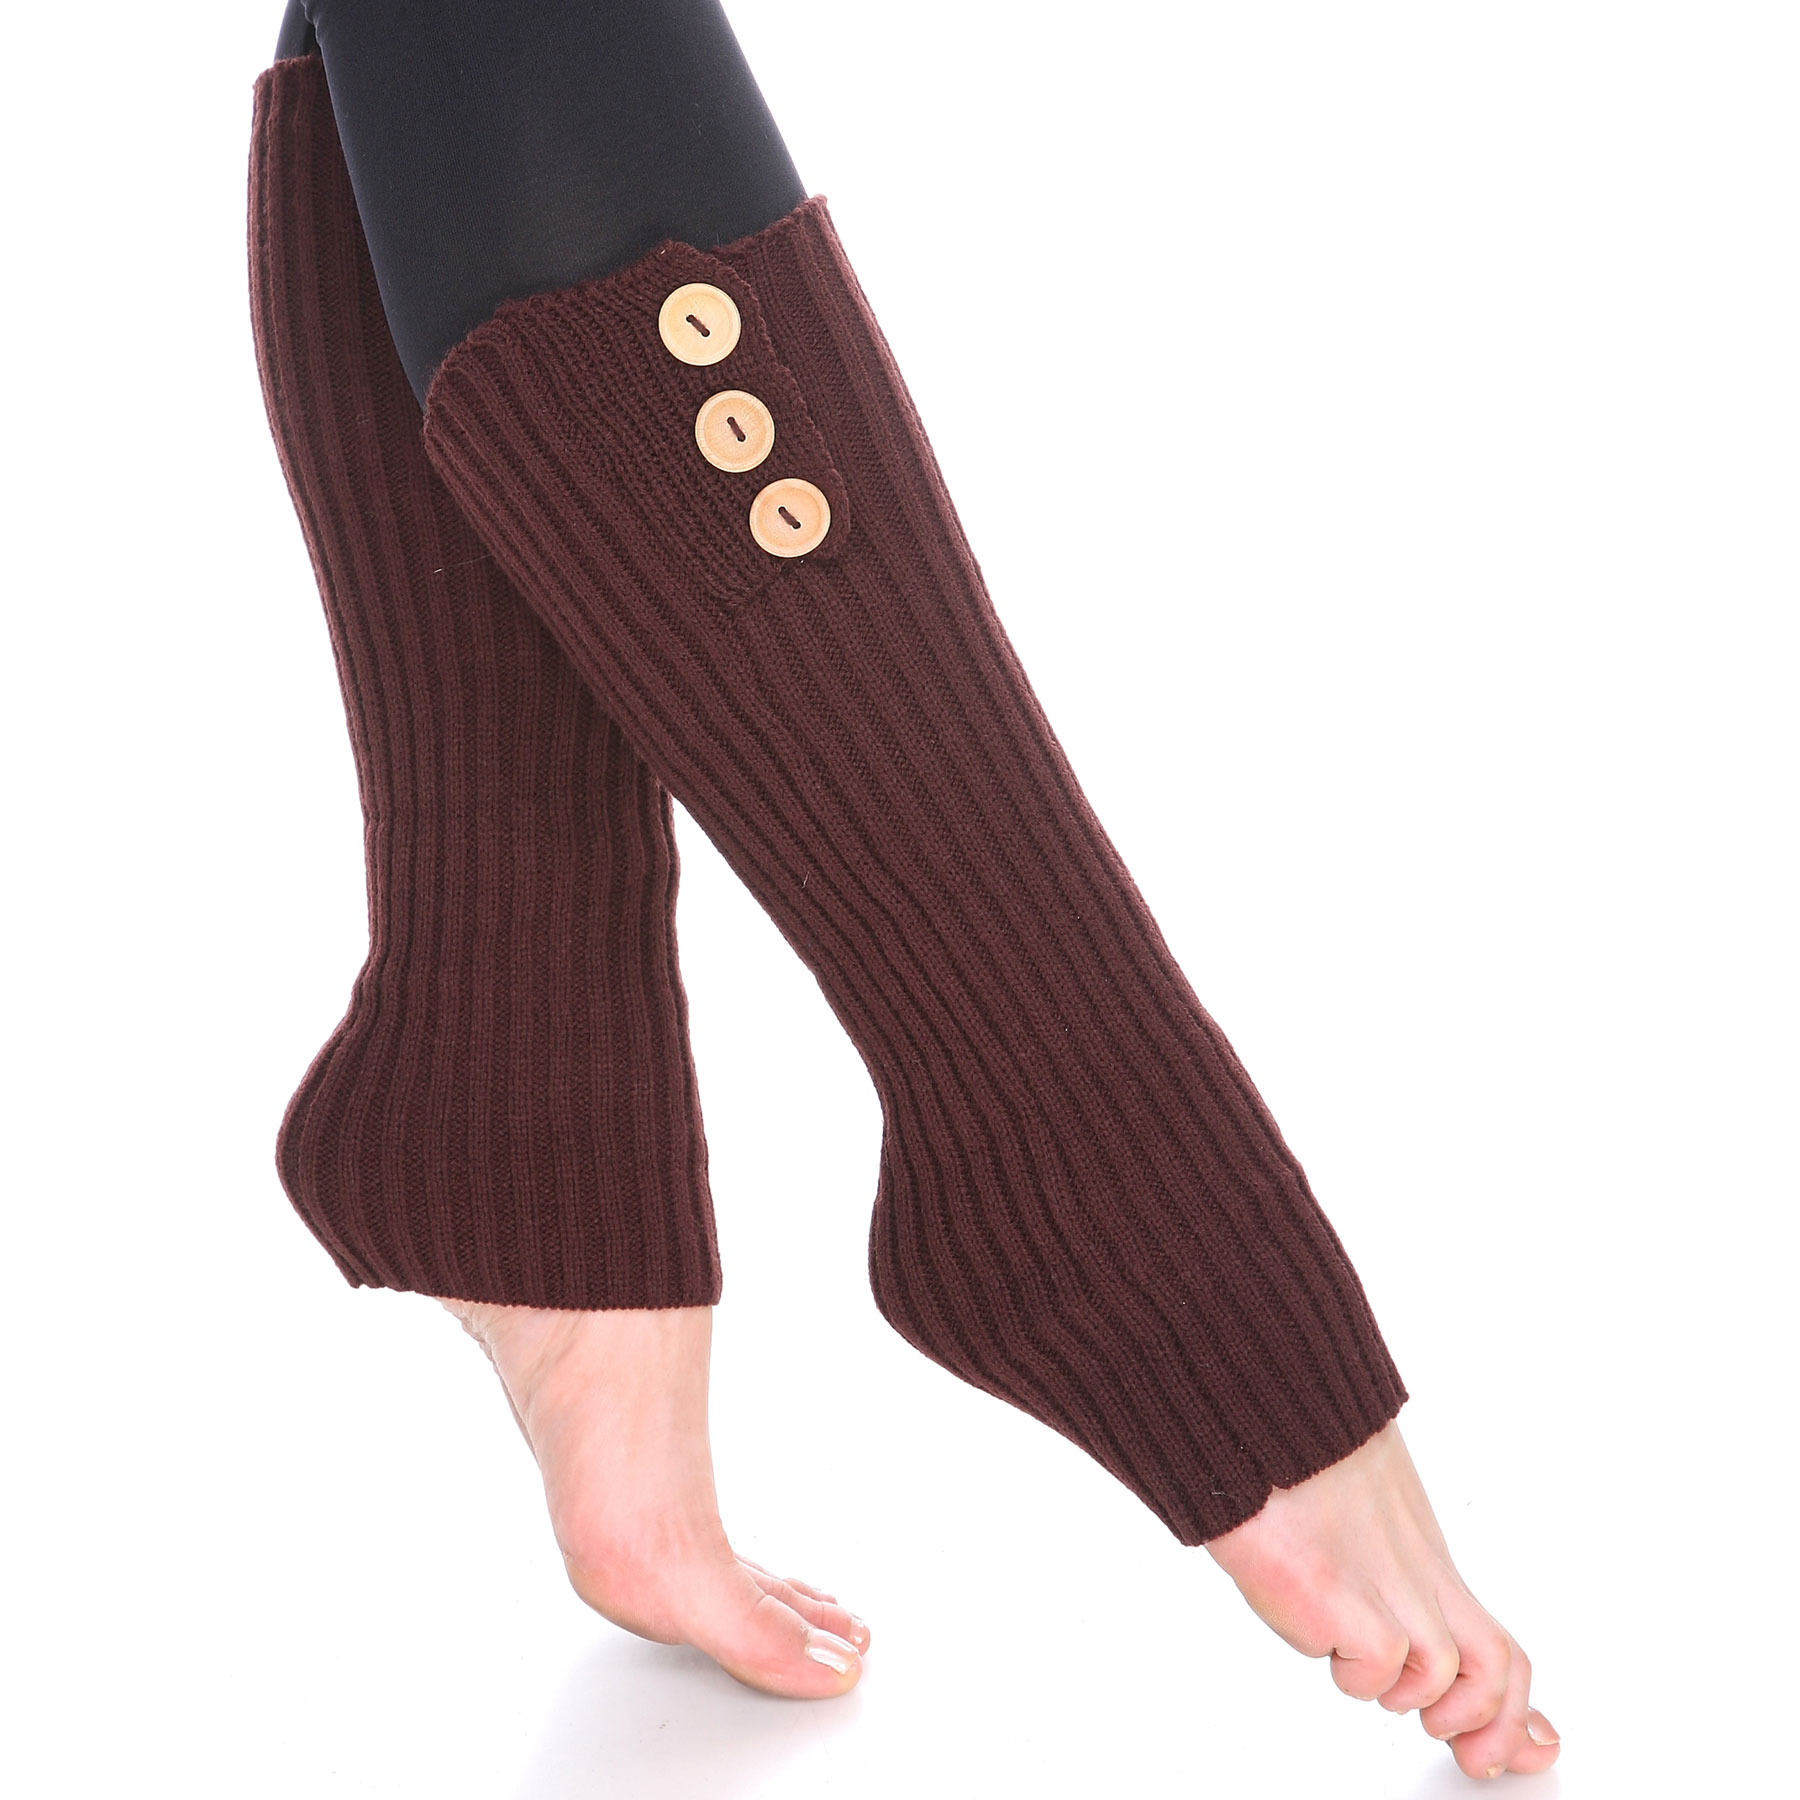 C Three Button Leg Warmers 264x113